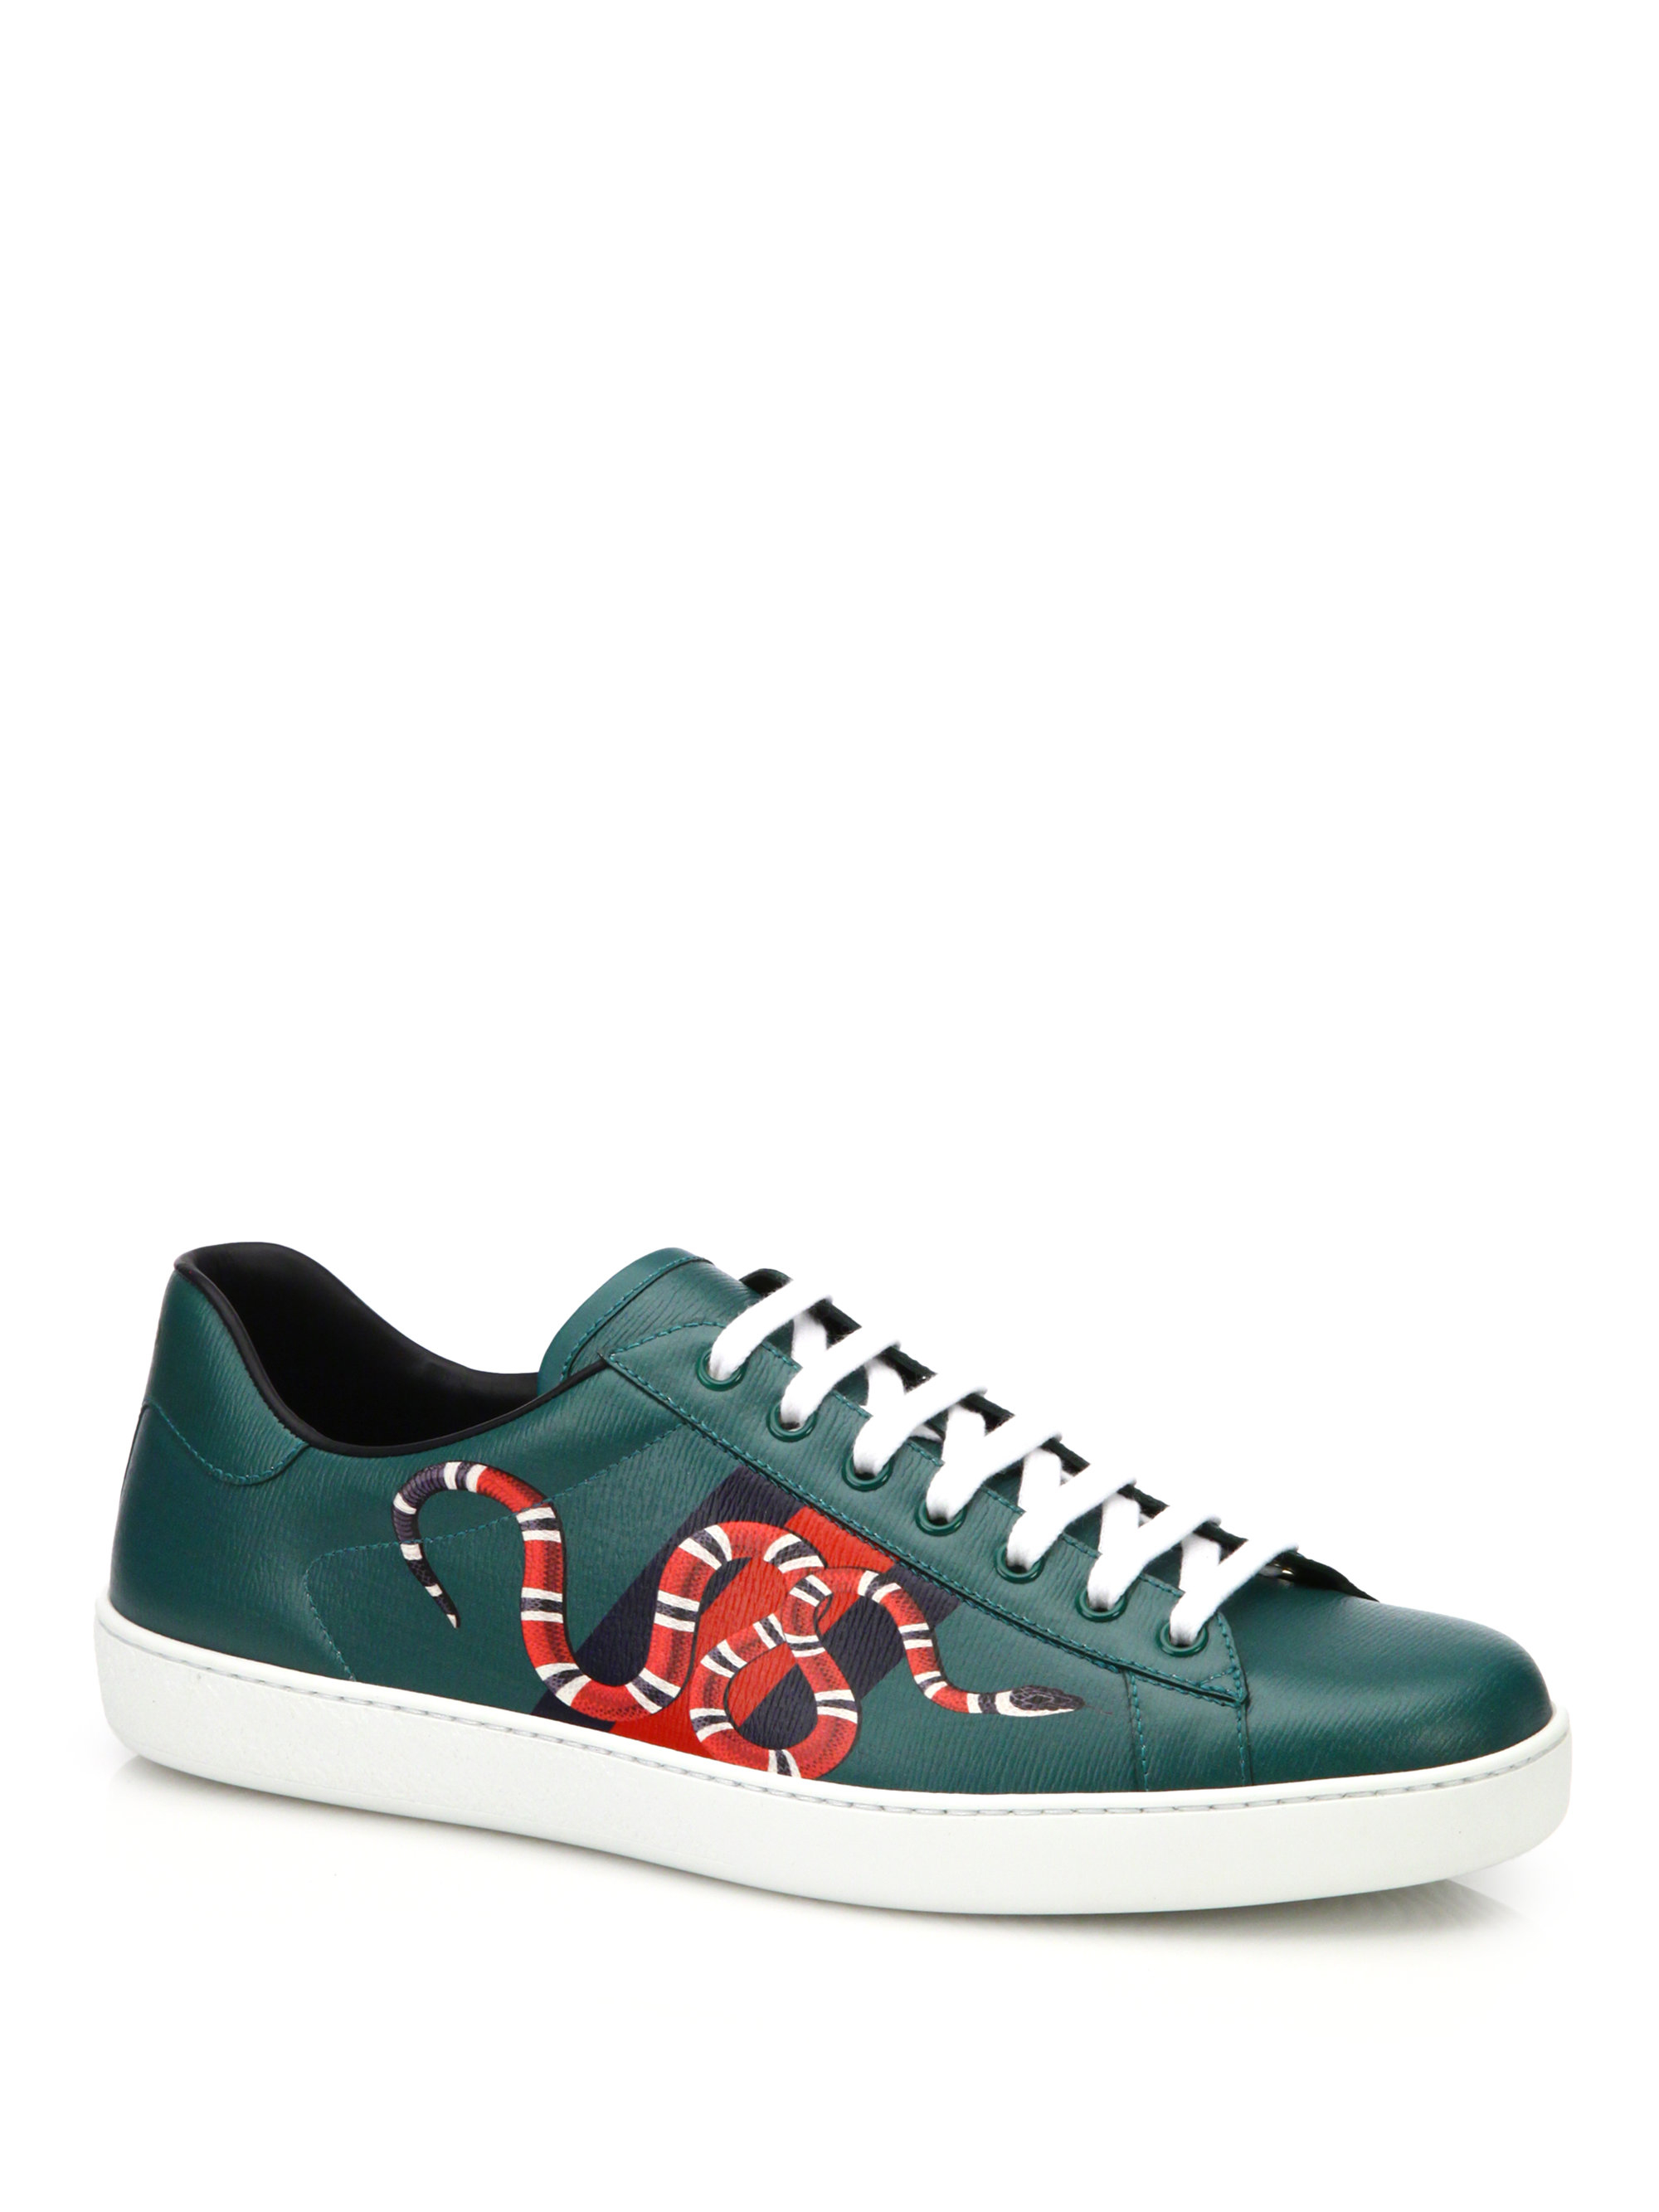 c342e2cac43 Lyst - Gucci New Ace Snake Print Leather Low-top Sneakers in Green